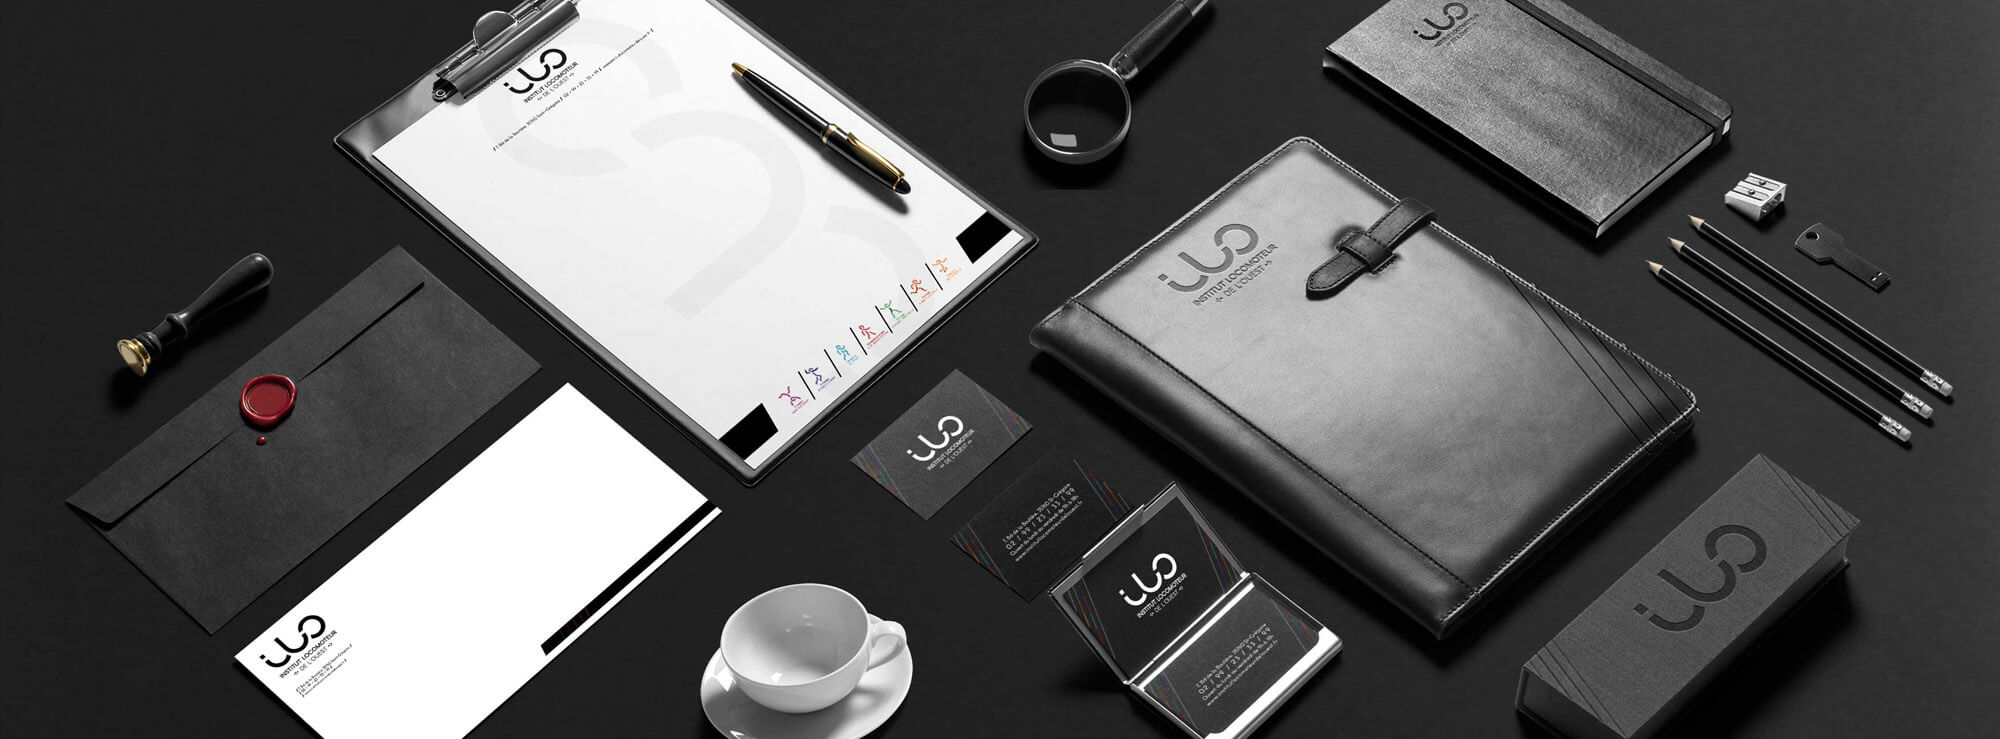 02.ilo logo stationnery businesscard notepad pencil.jpg